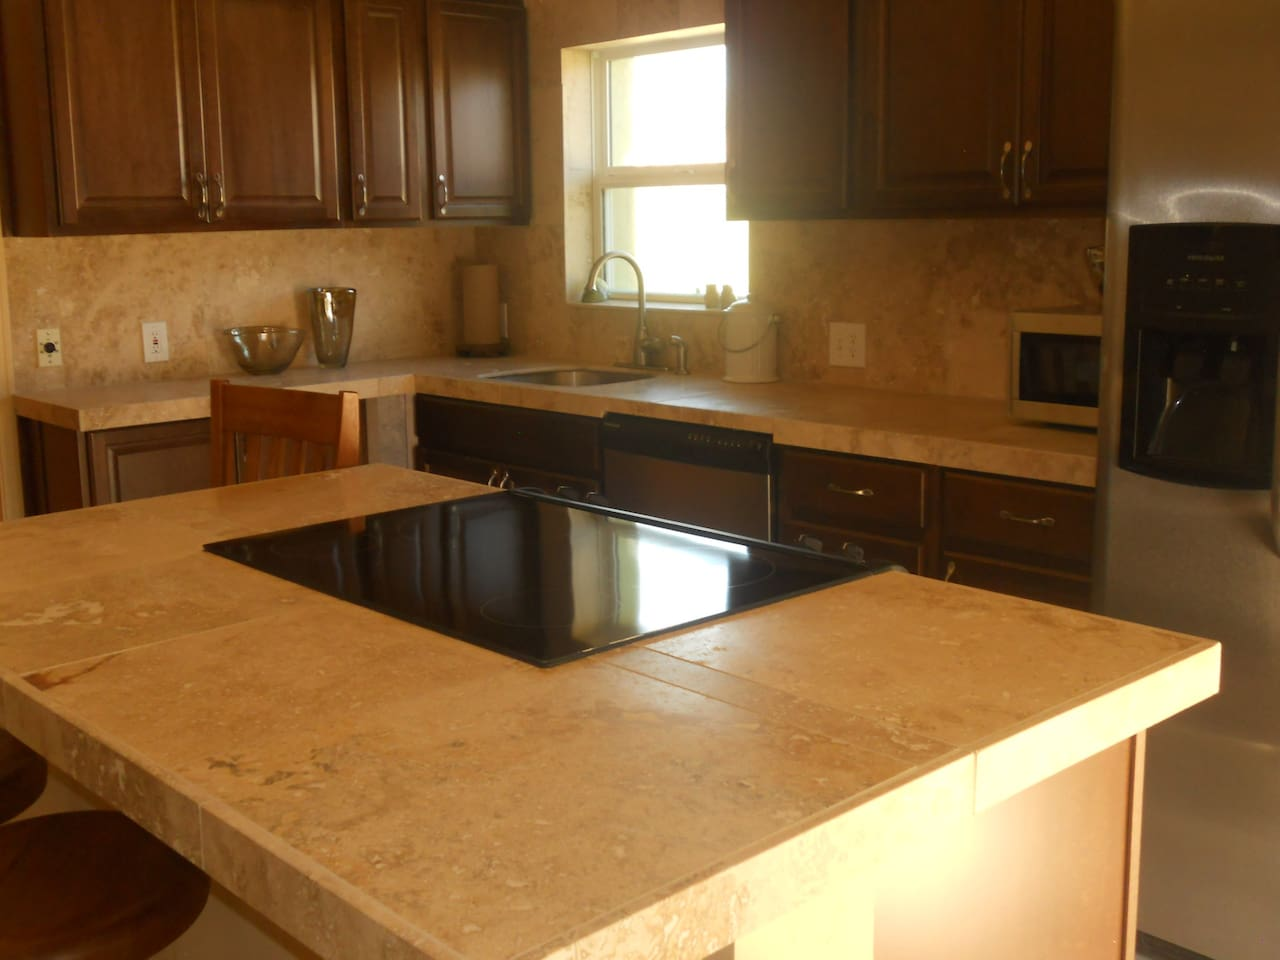 Recently remodeled kitchen with stainless steel, travertine counter tops, cook top and bar.